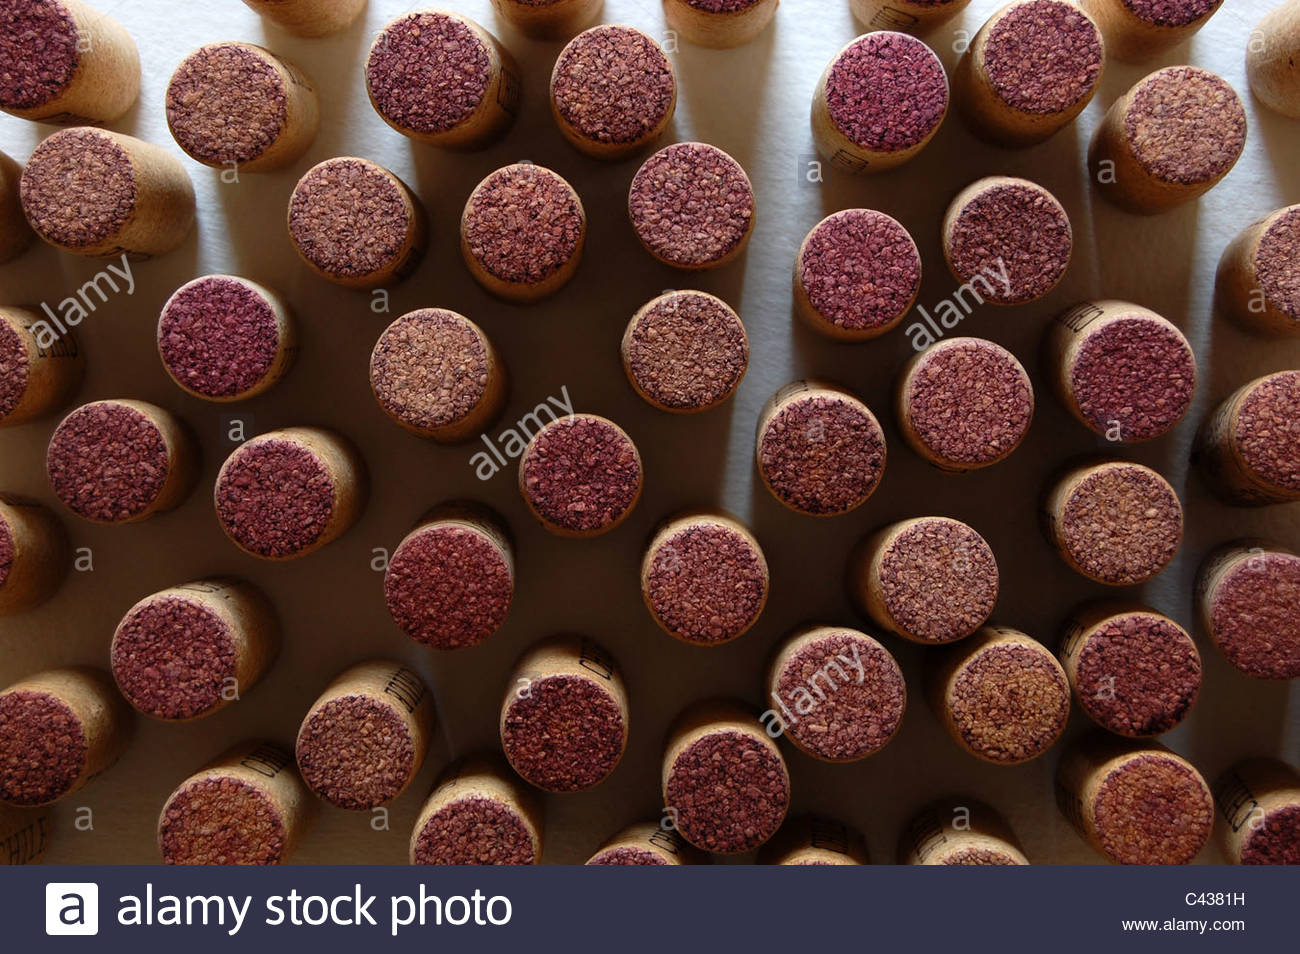 overhead tabletop studio shot closeup group of approximately 40 red wine corks standing on end natural light shadows Stock Photo